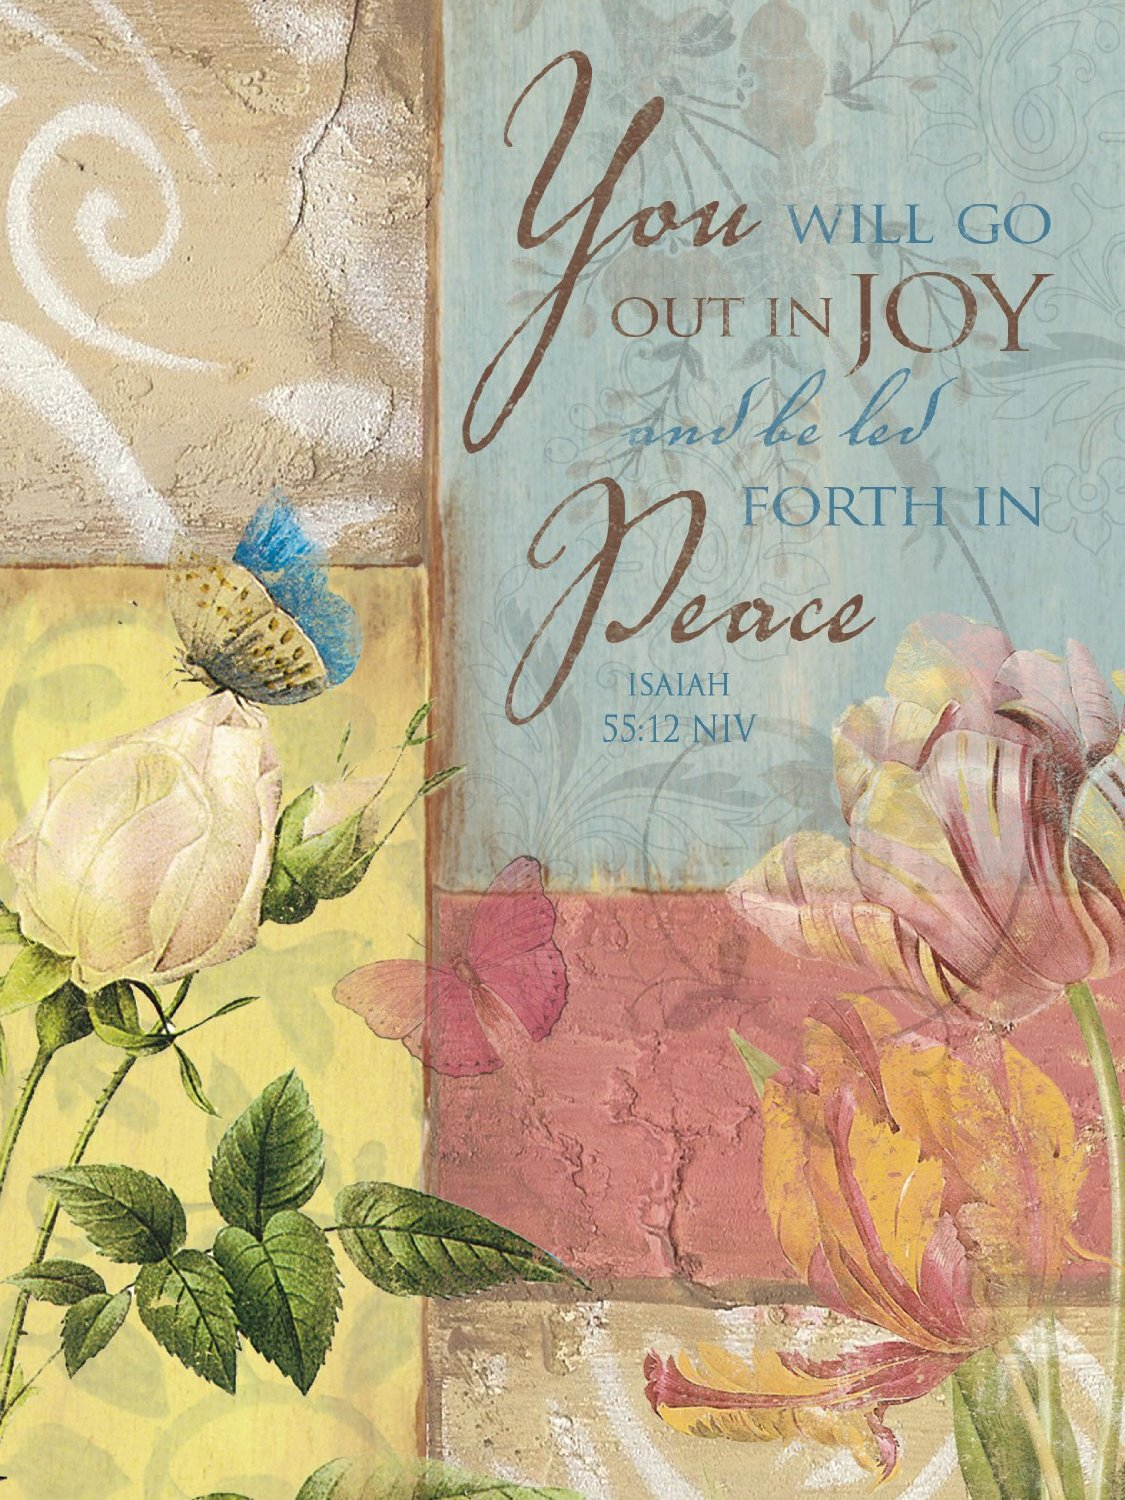 Buy legacy of faith boxed note cards with scripture clothesline legacy of faith deluxe boxed note cards with scripture go out in joy 13 kristyandbryce Image collections